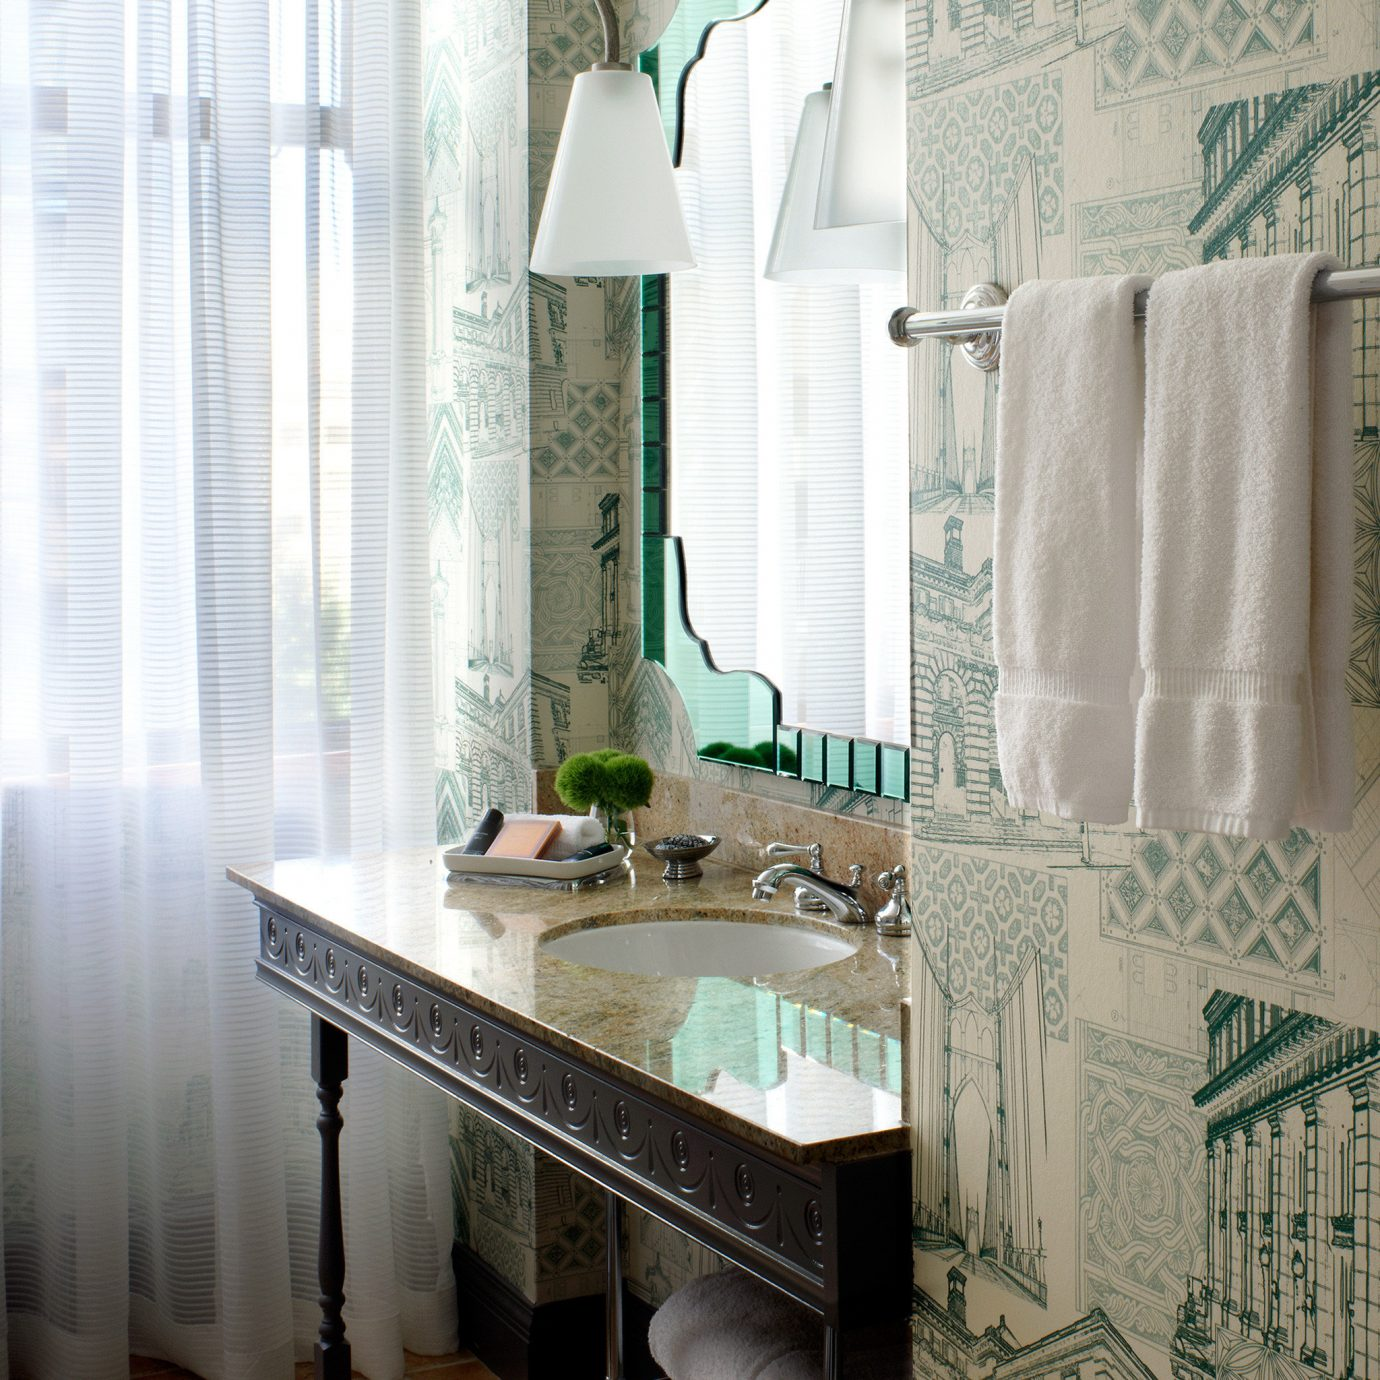 Boutique City bathroom curtain home Kitchen sink countertop window treatment material textile flooring tiled